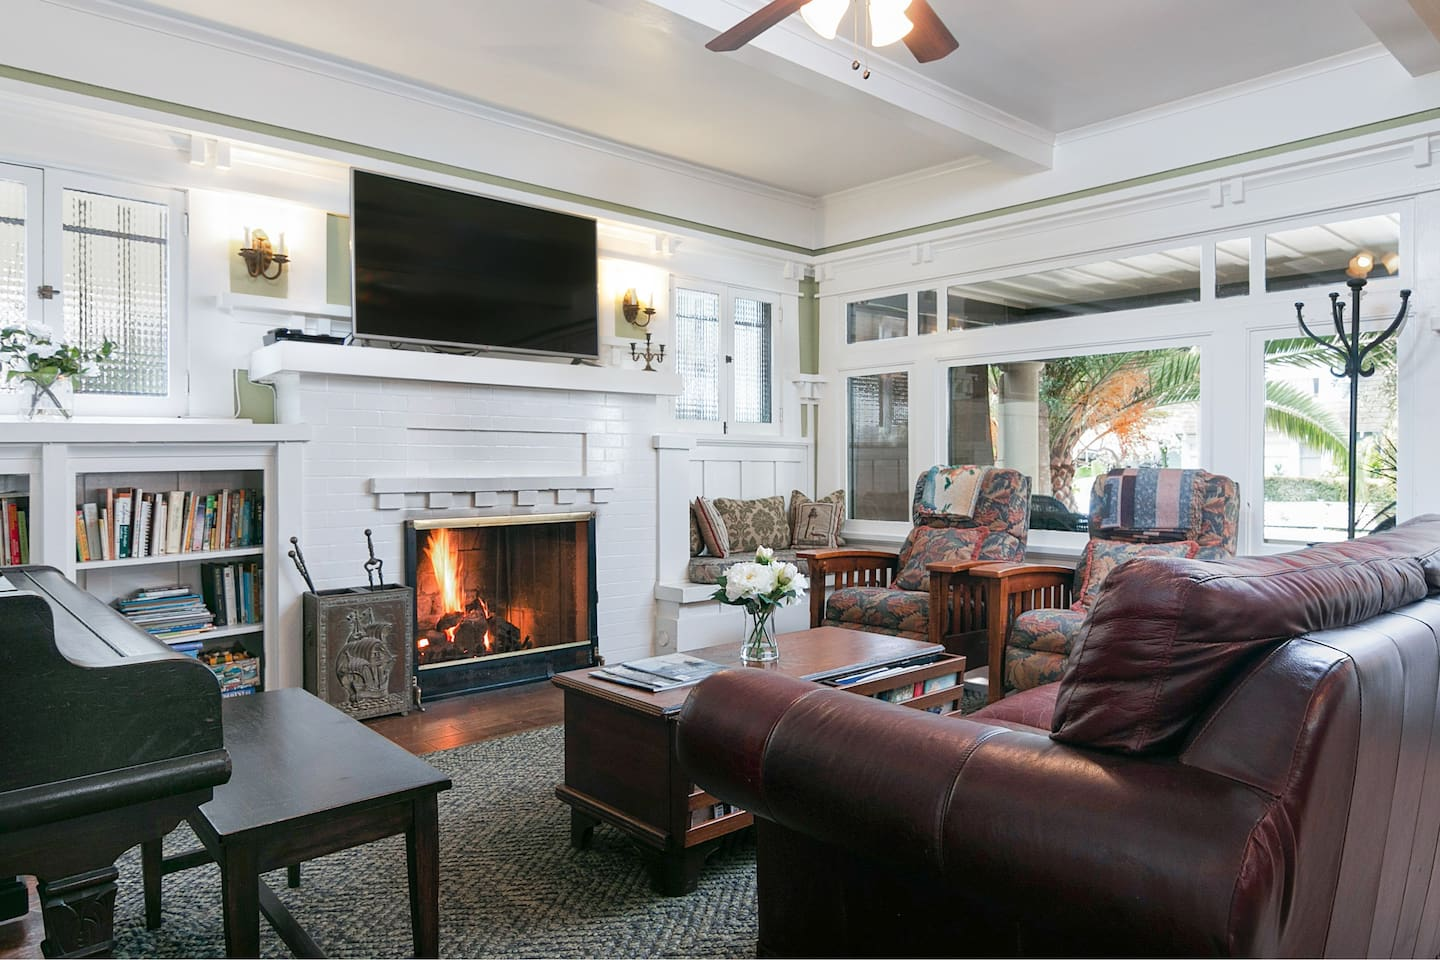 Welcome to Santa Barbara! This beachside property is professionally managed by TurnKey Vacation Rentals.